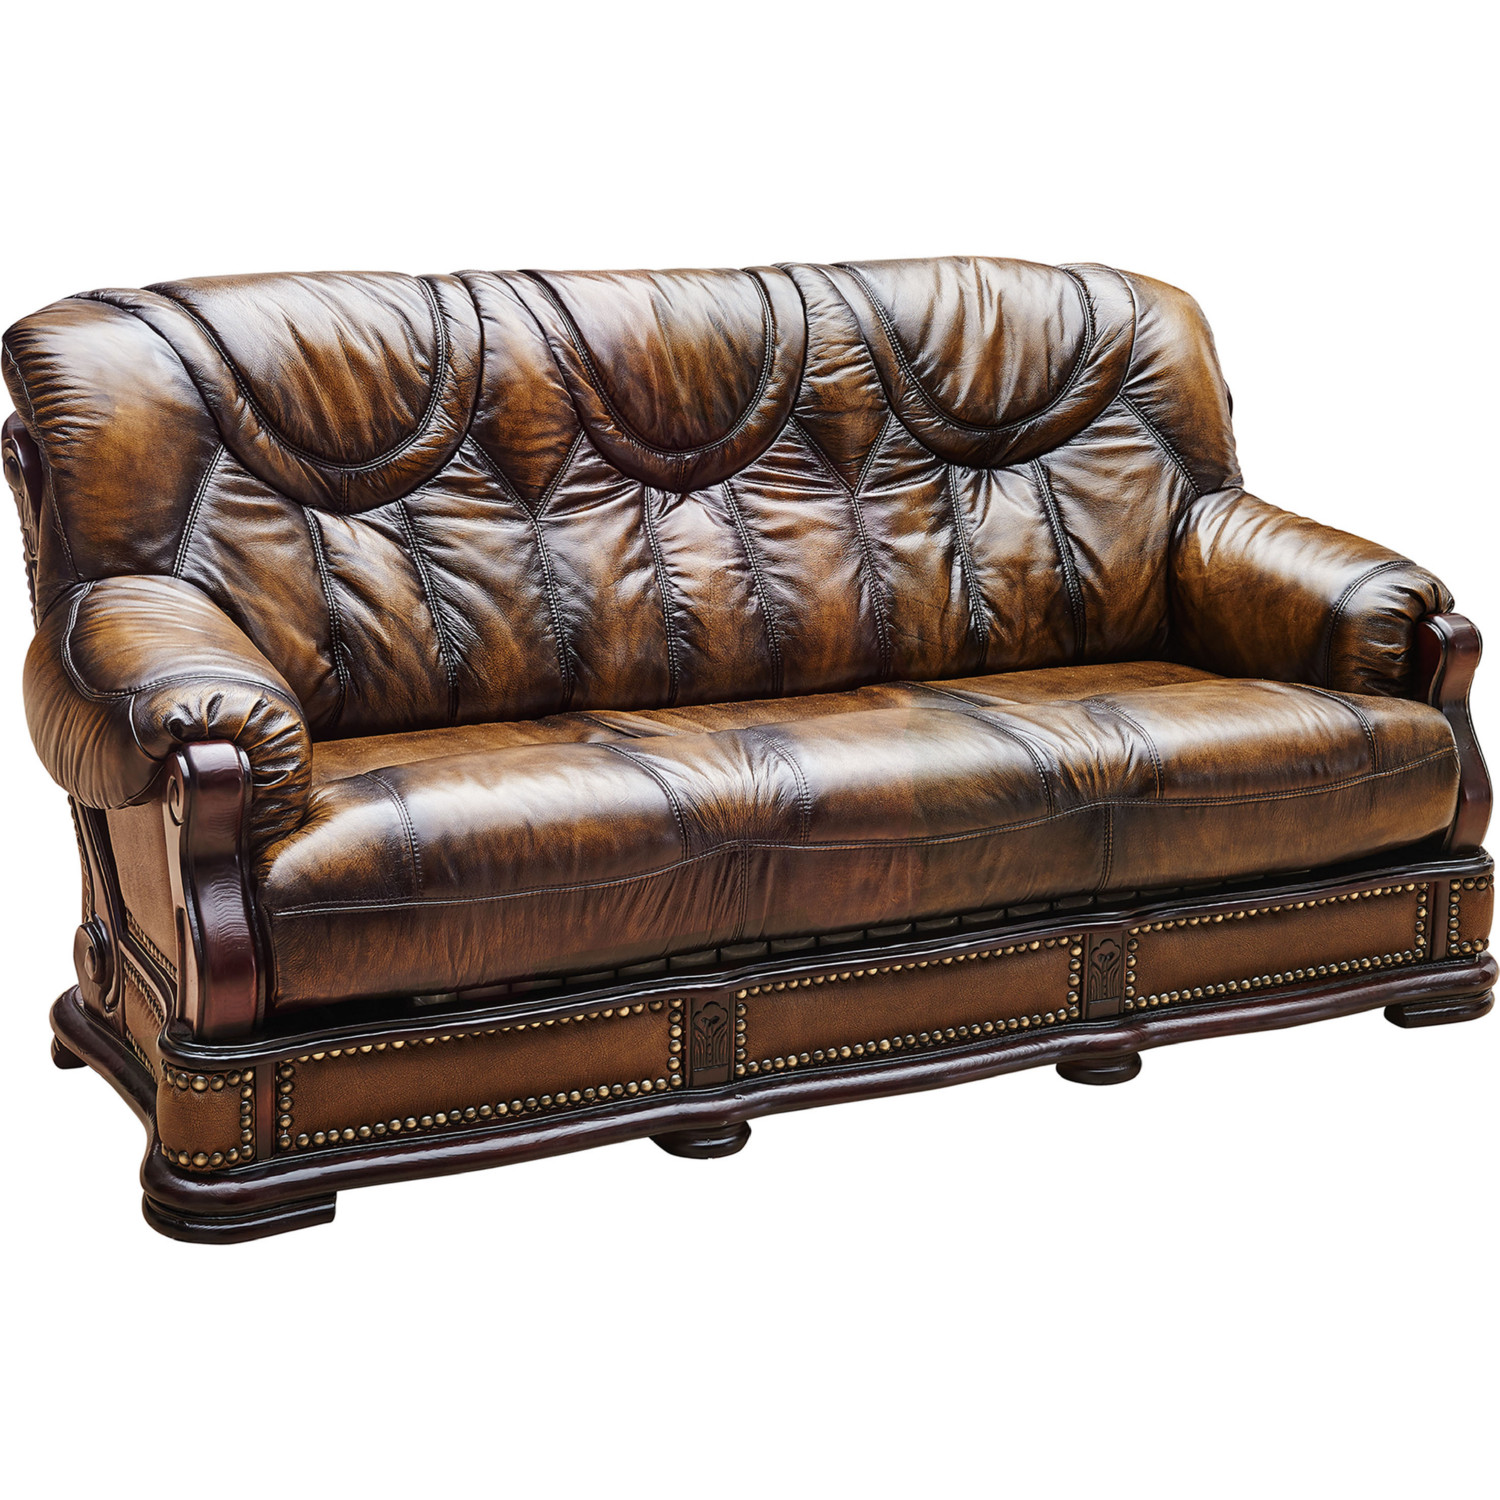 Oakman Sofa w/ Bed in Italian Leather w/ Nailhead by ESF Furniture Imports